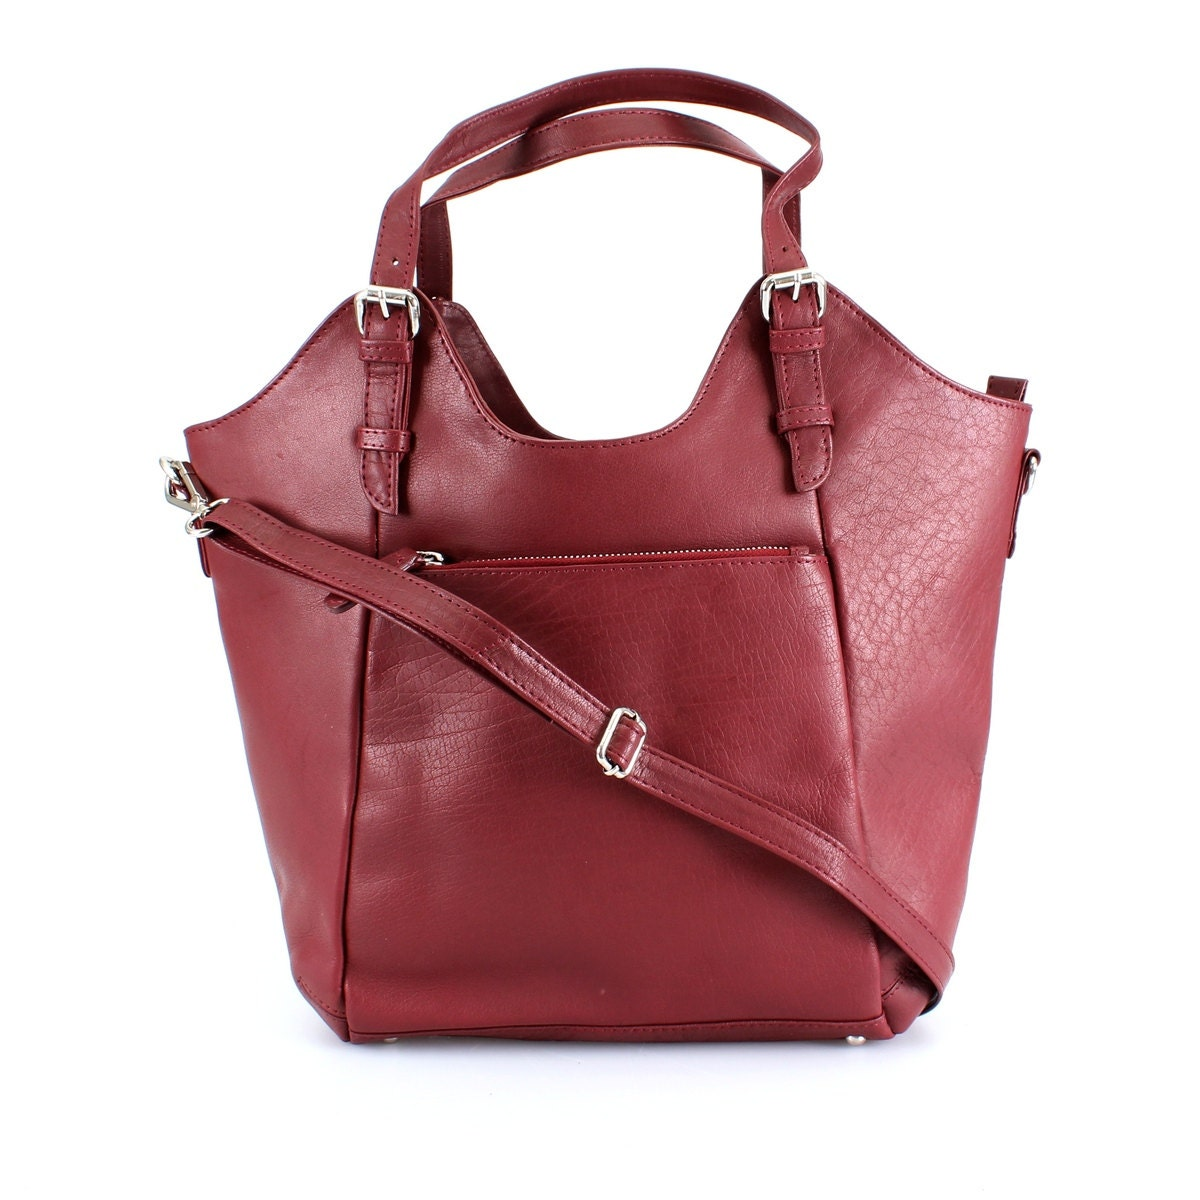 ♥.•*¨♡ RED Leather Tote Bag | Red Tote Bag ♡*¨•.♥ Sputnik classic, Collection Antique An elegant bag for everyday wear. Wear it to work or a night in the city - either way, it's an outfit maker. This designer tote bags roomy interior provides a great storage space for your.